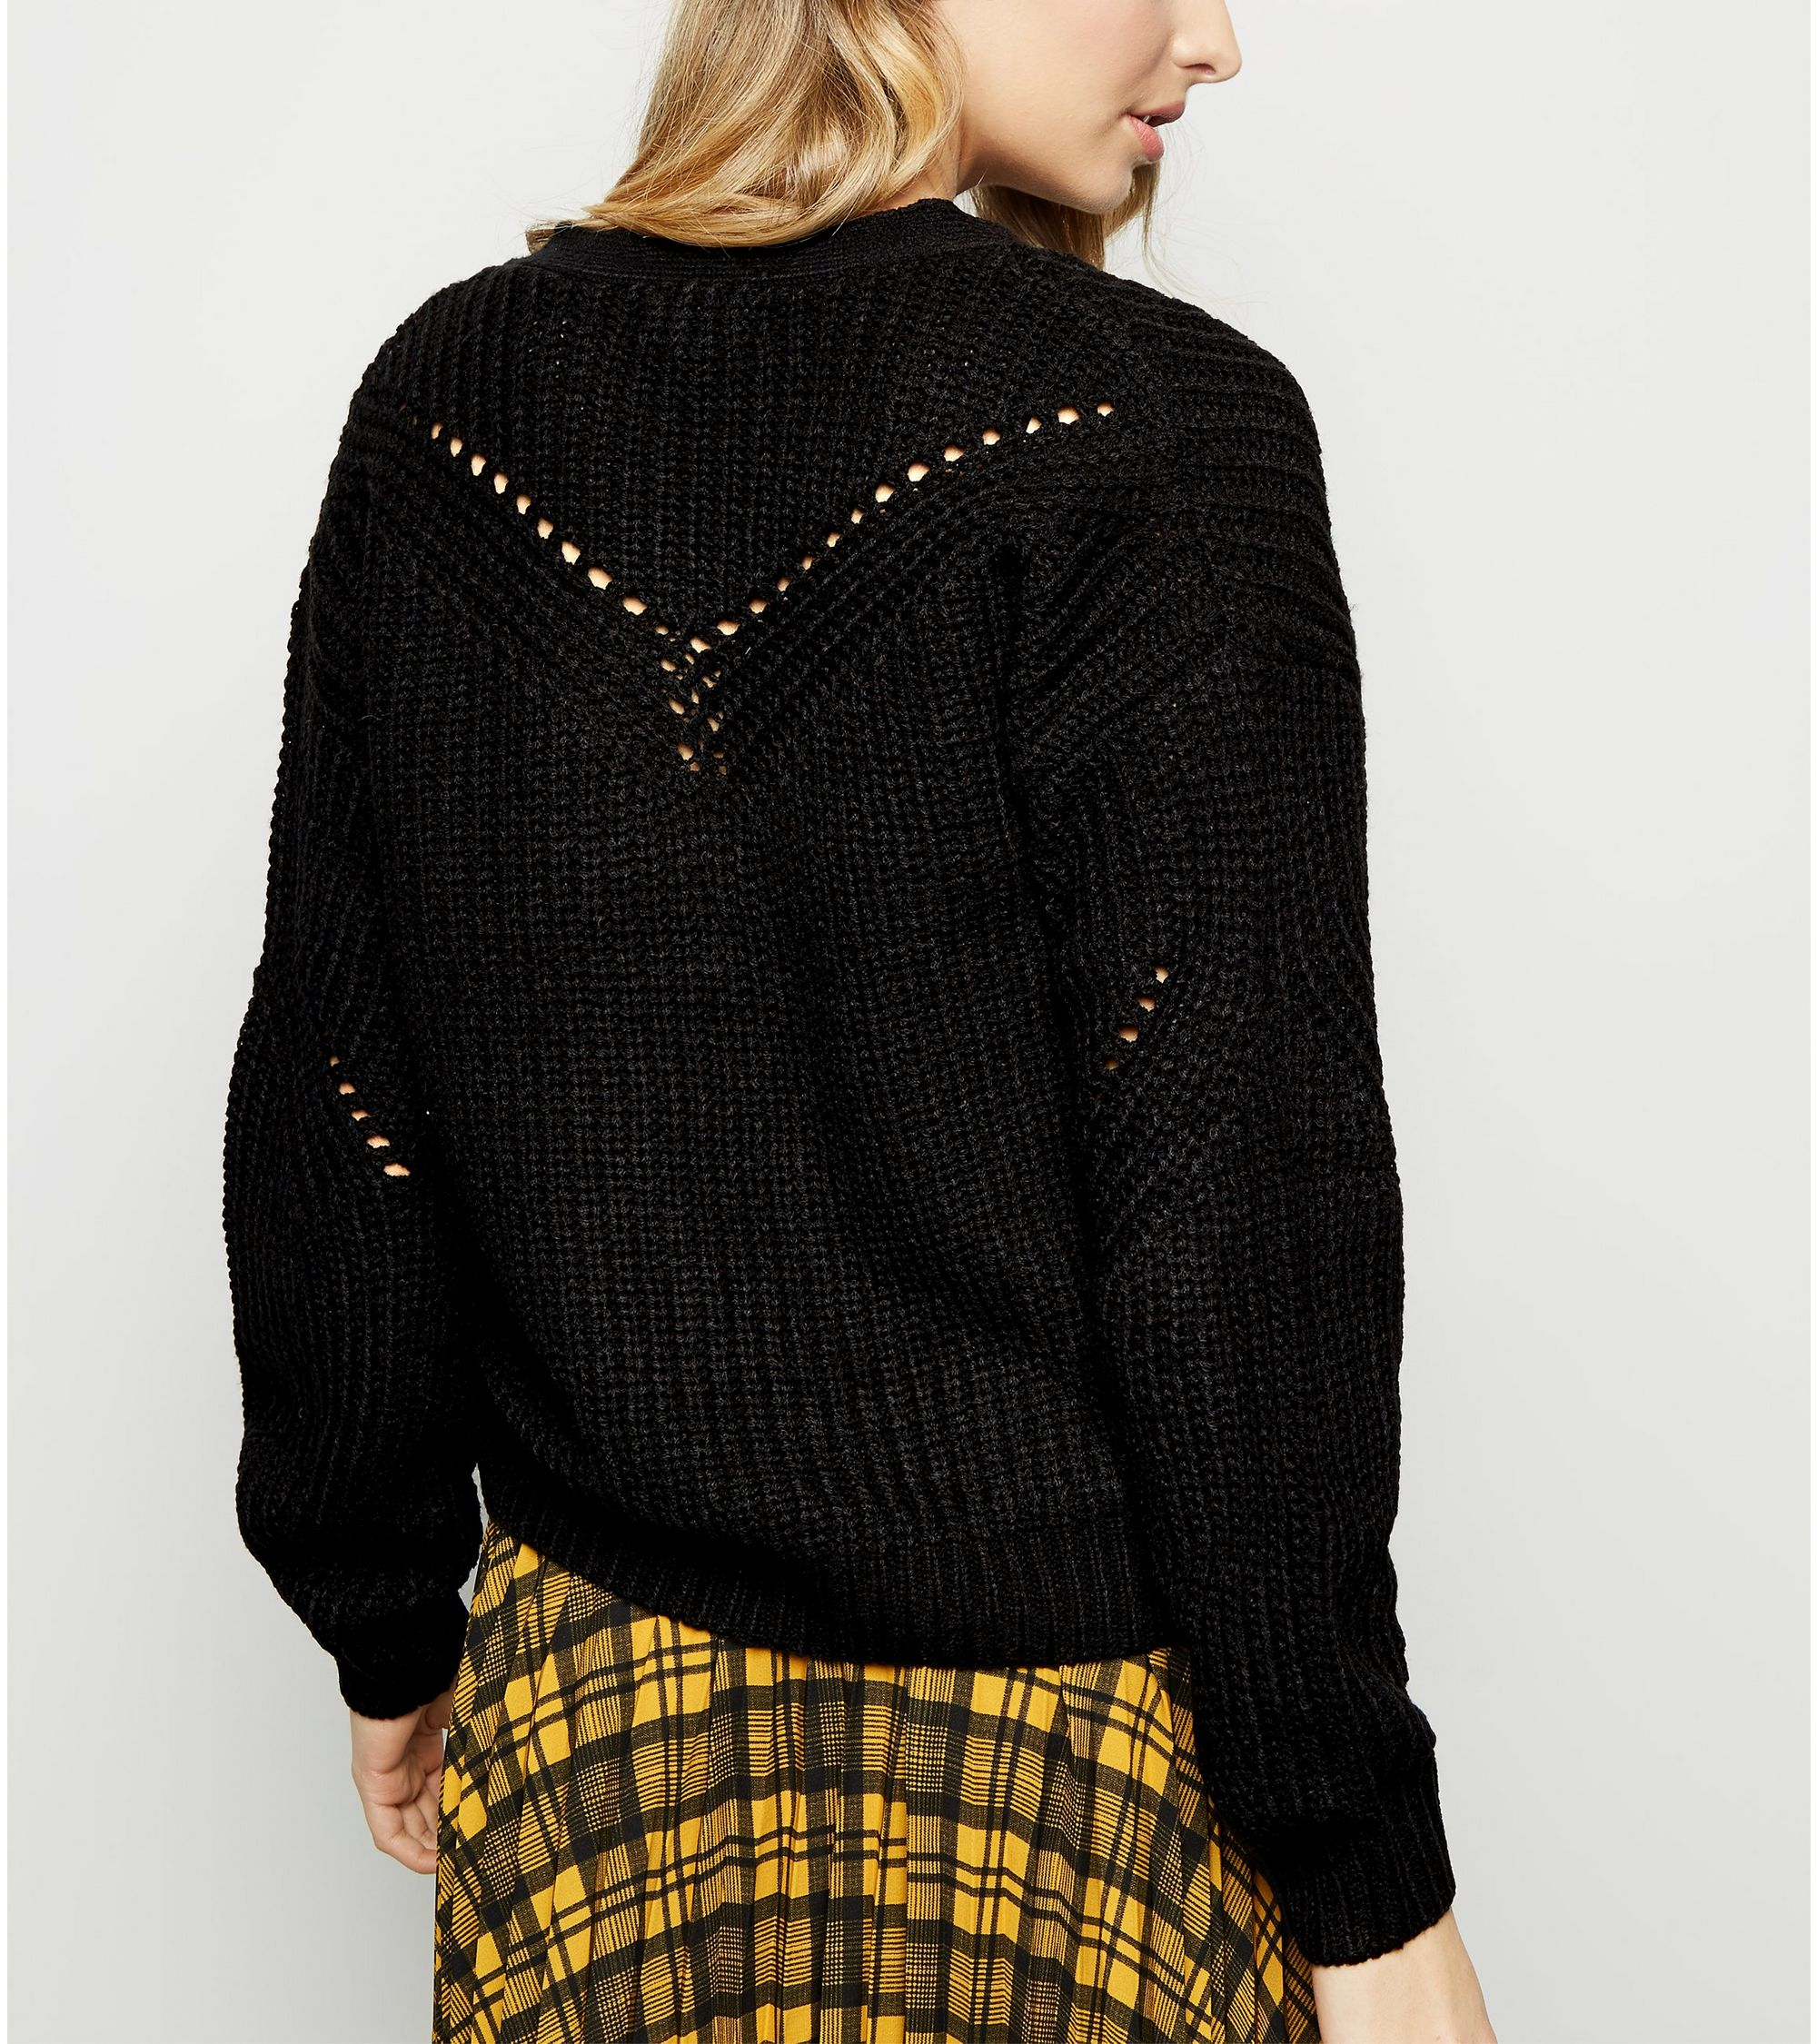 8414182ddc New Look Black Chunky Pointelle Knit Cardigan at £22.99